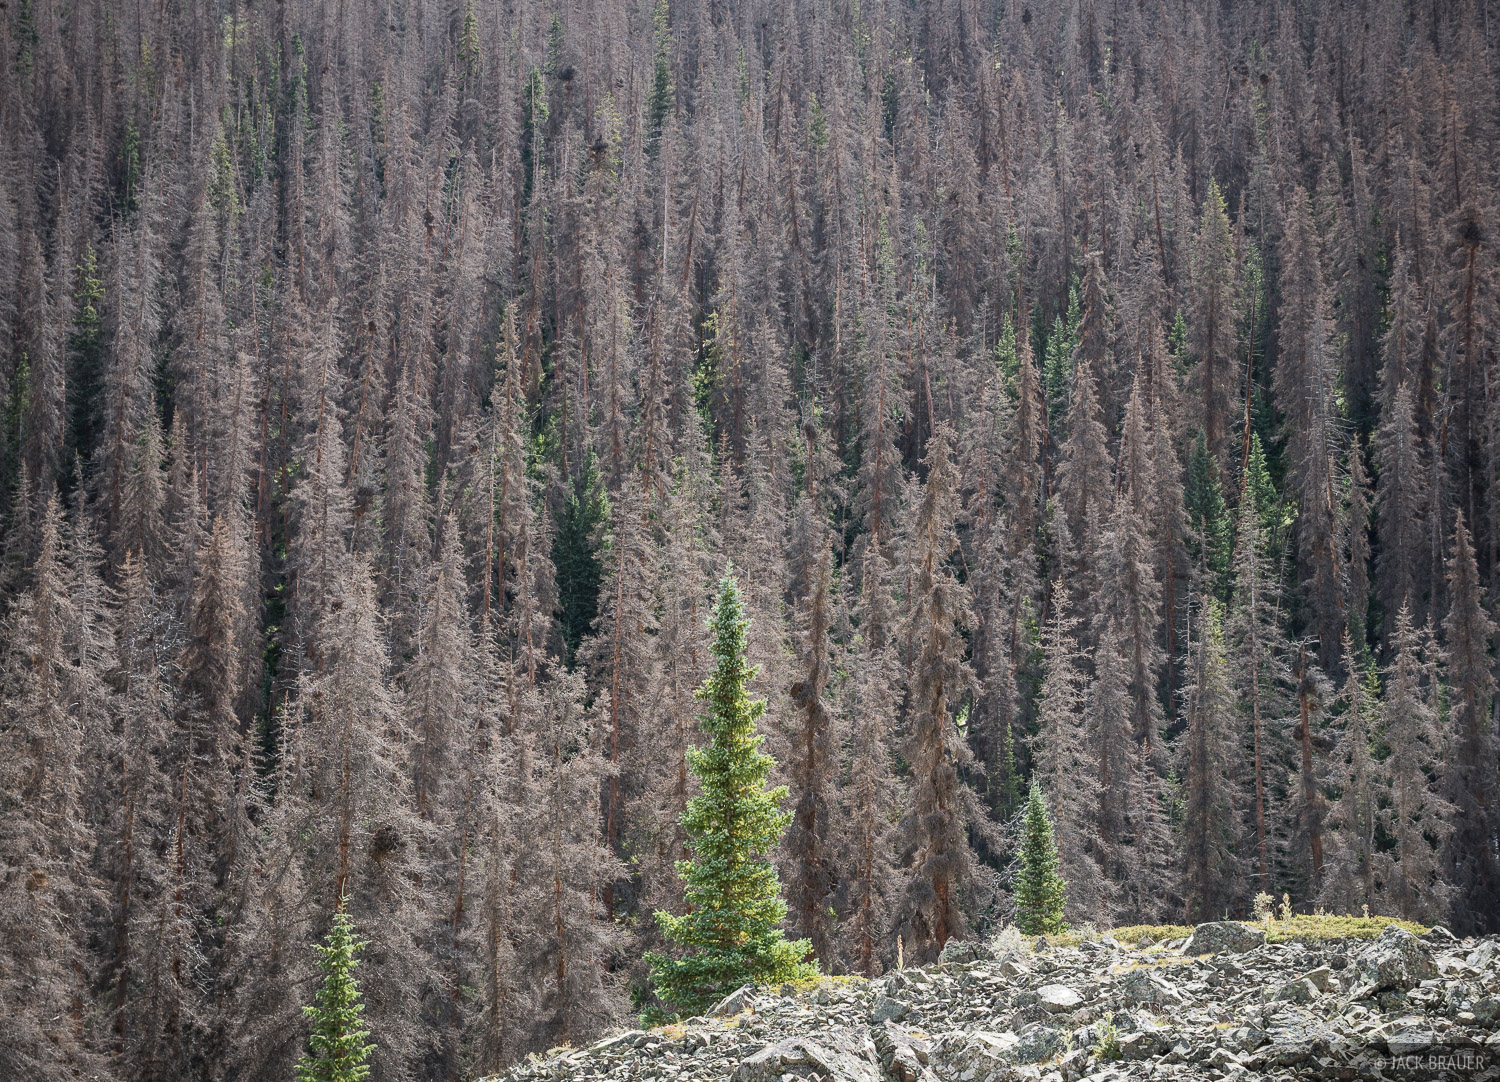 Cataract Gulch, Colorado, San Juan Mountains, beetle kill, pine beetle, forest, photo